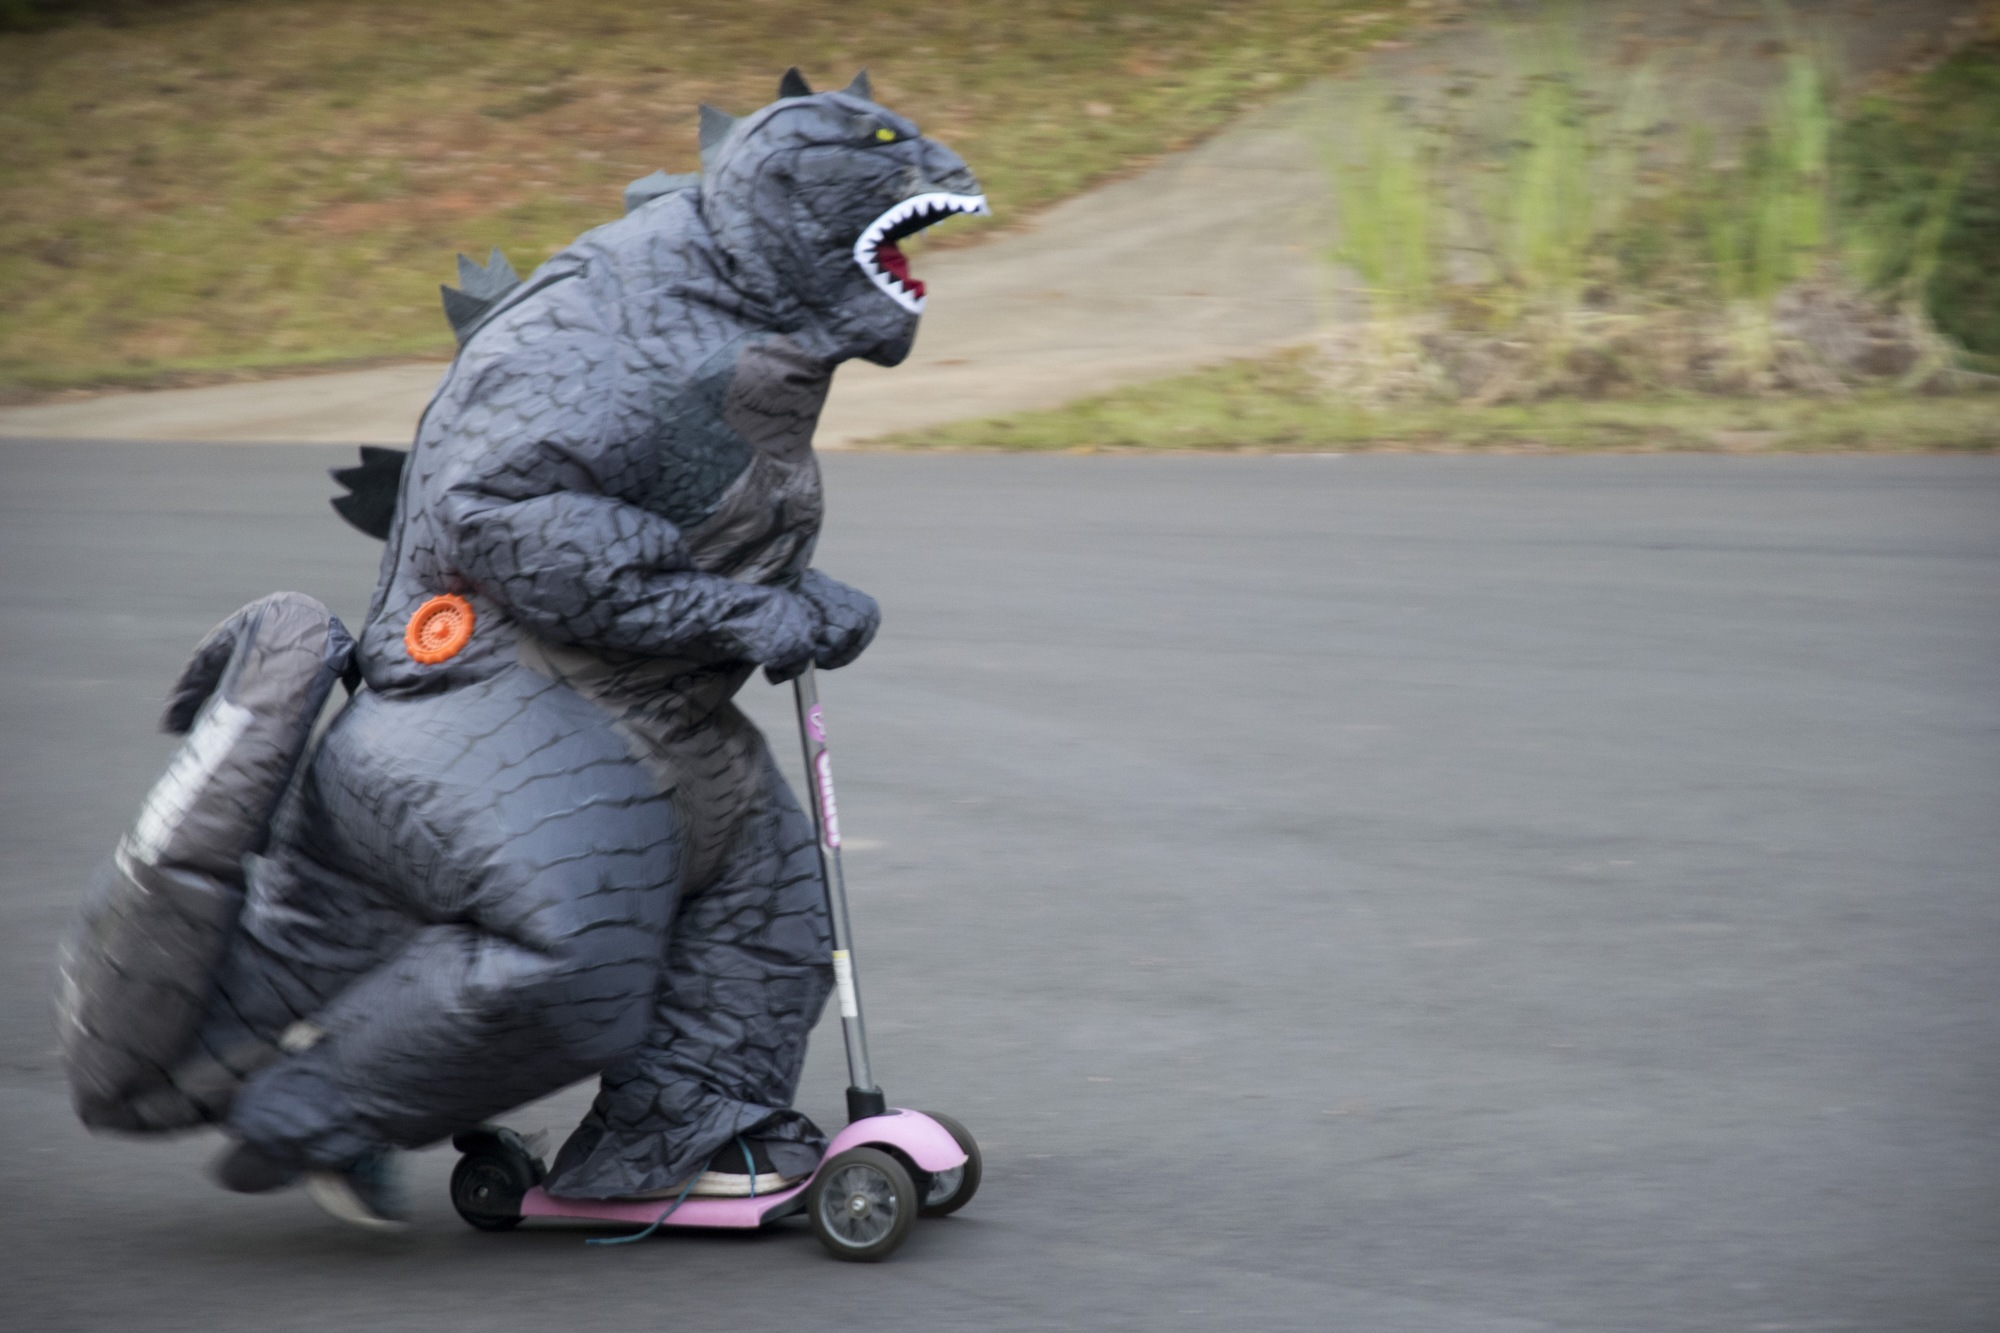 child in an inflatable godzilla costume on a scooter